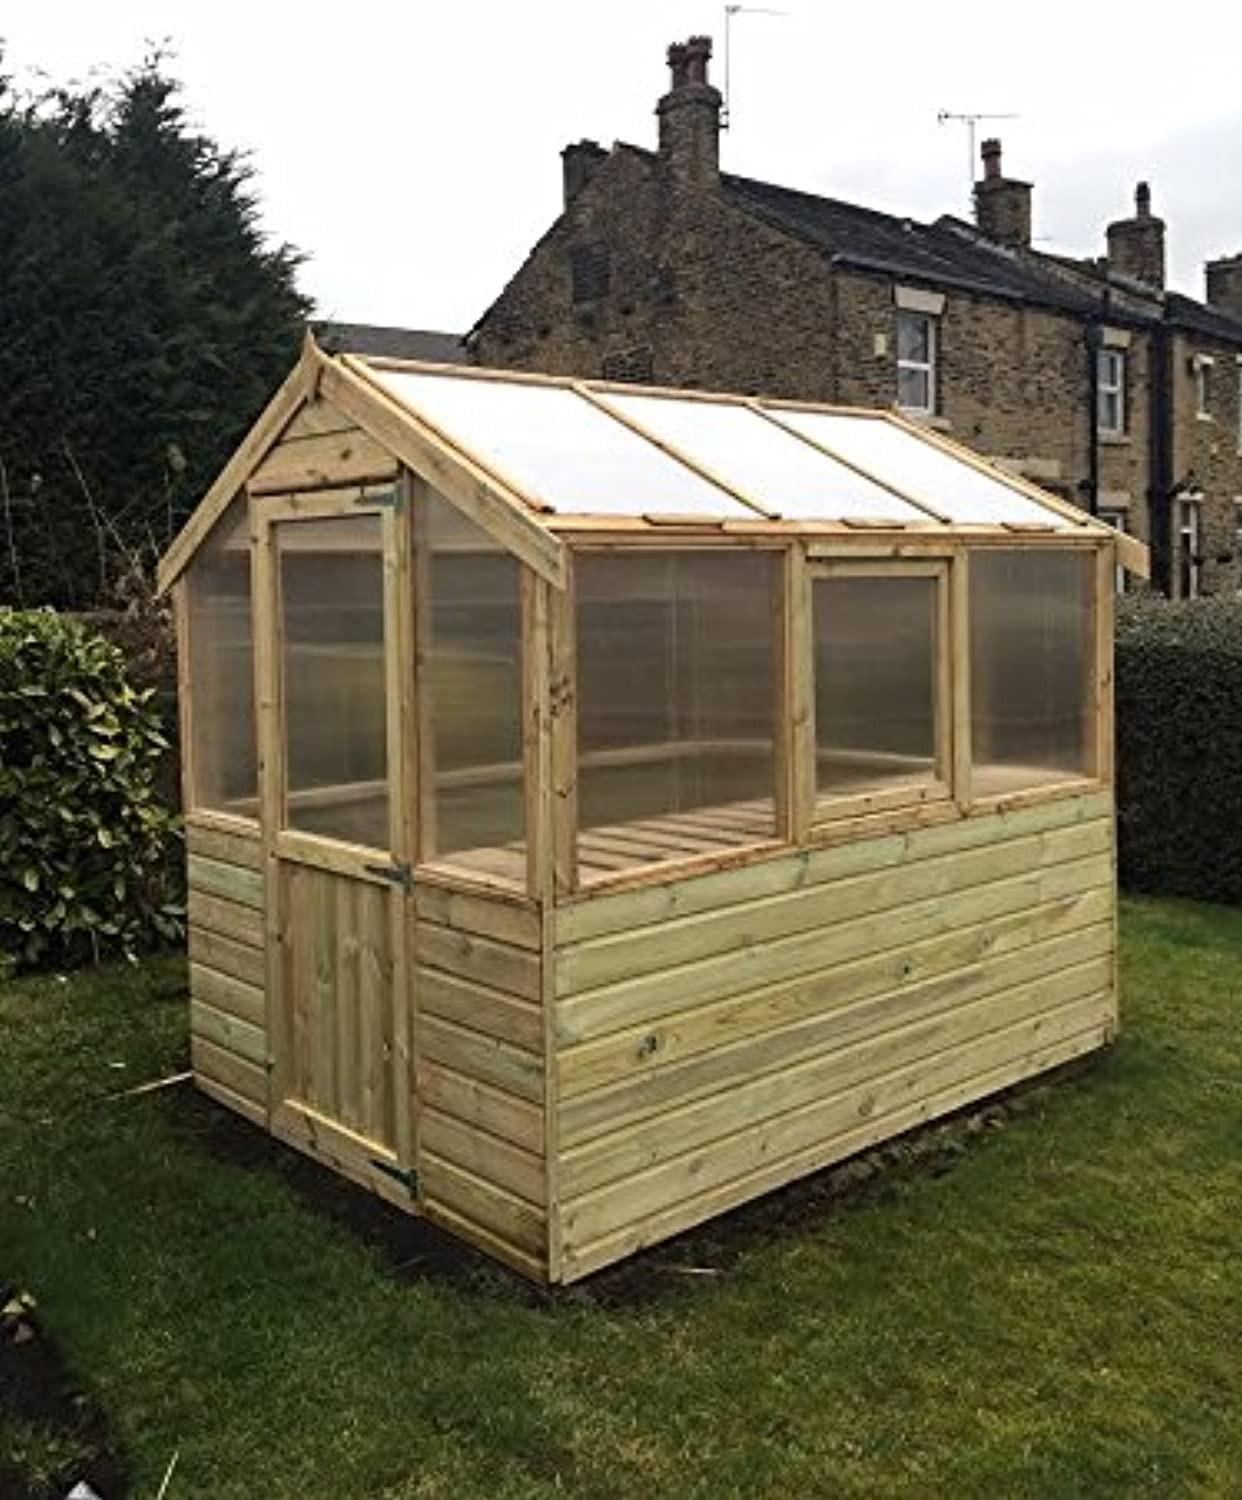 6x6 Pinelap Wooden Greenhouse Tanalised T&G Shiplap With Glazing.